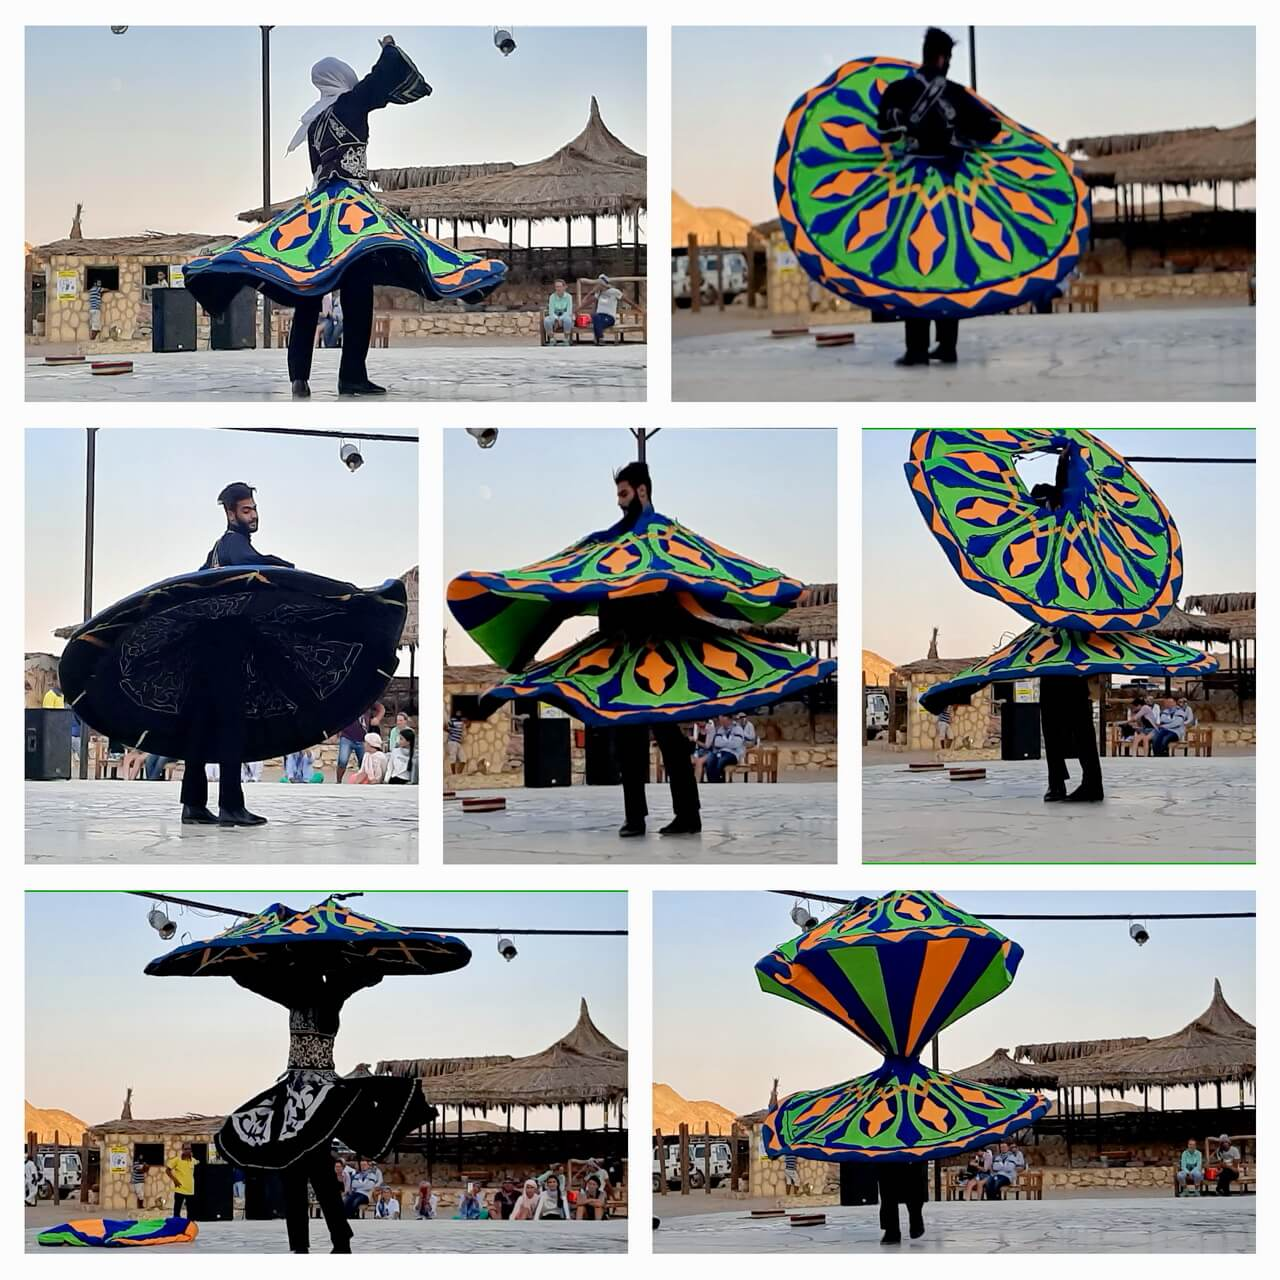 Tannoura dance or Dervish dance